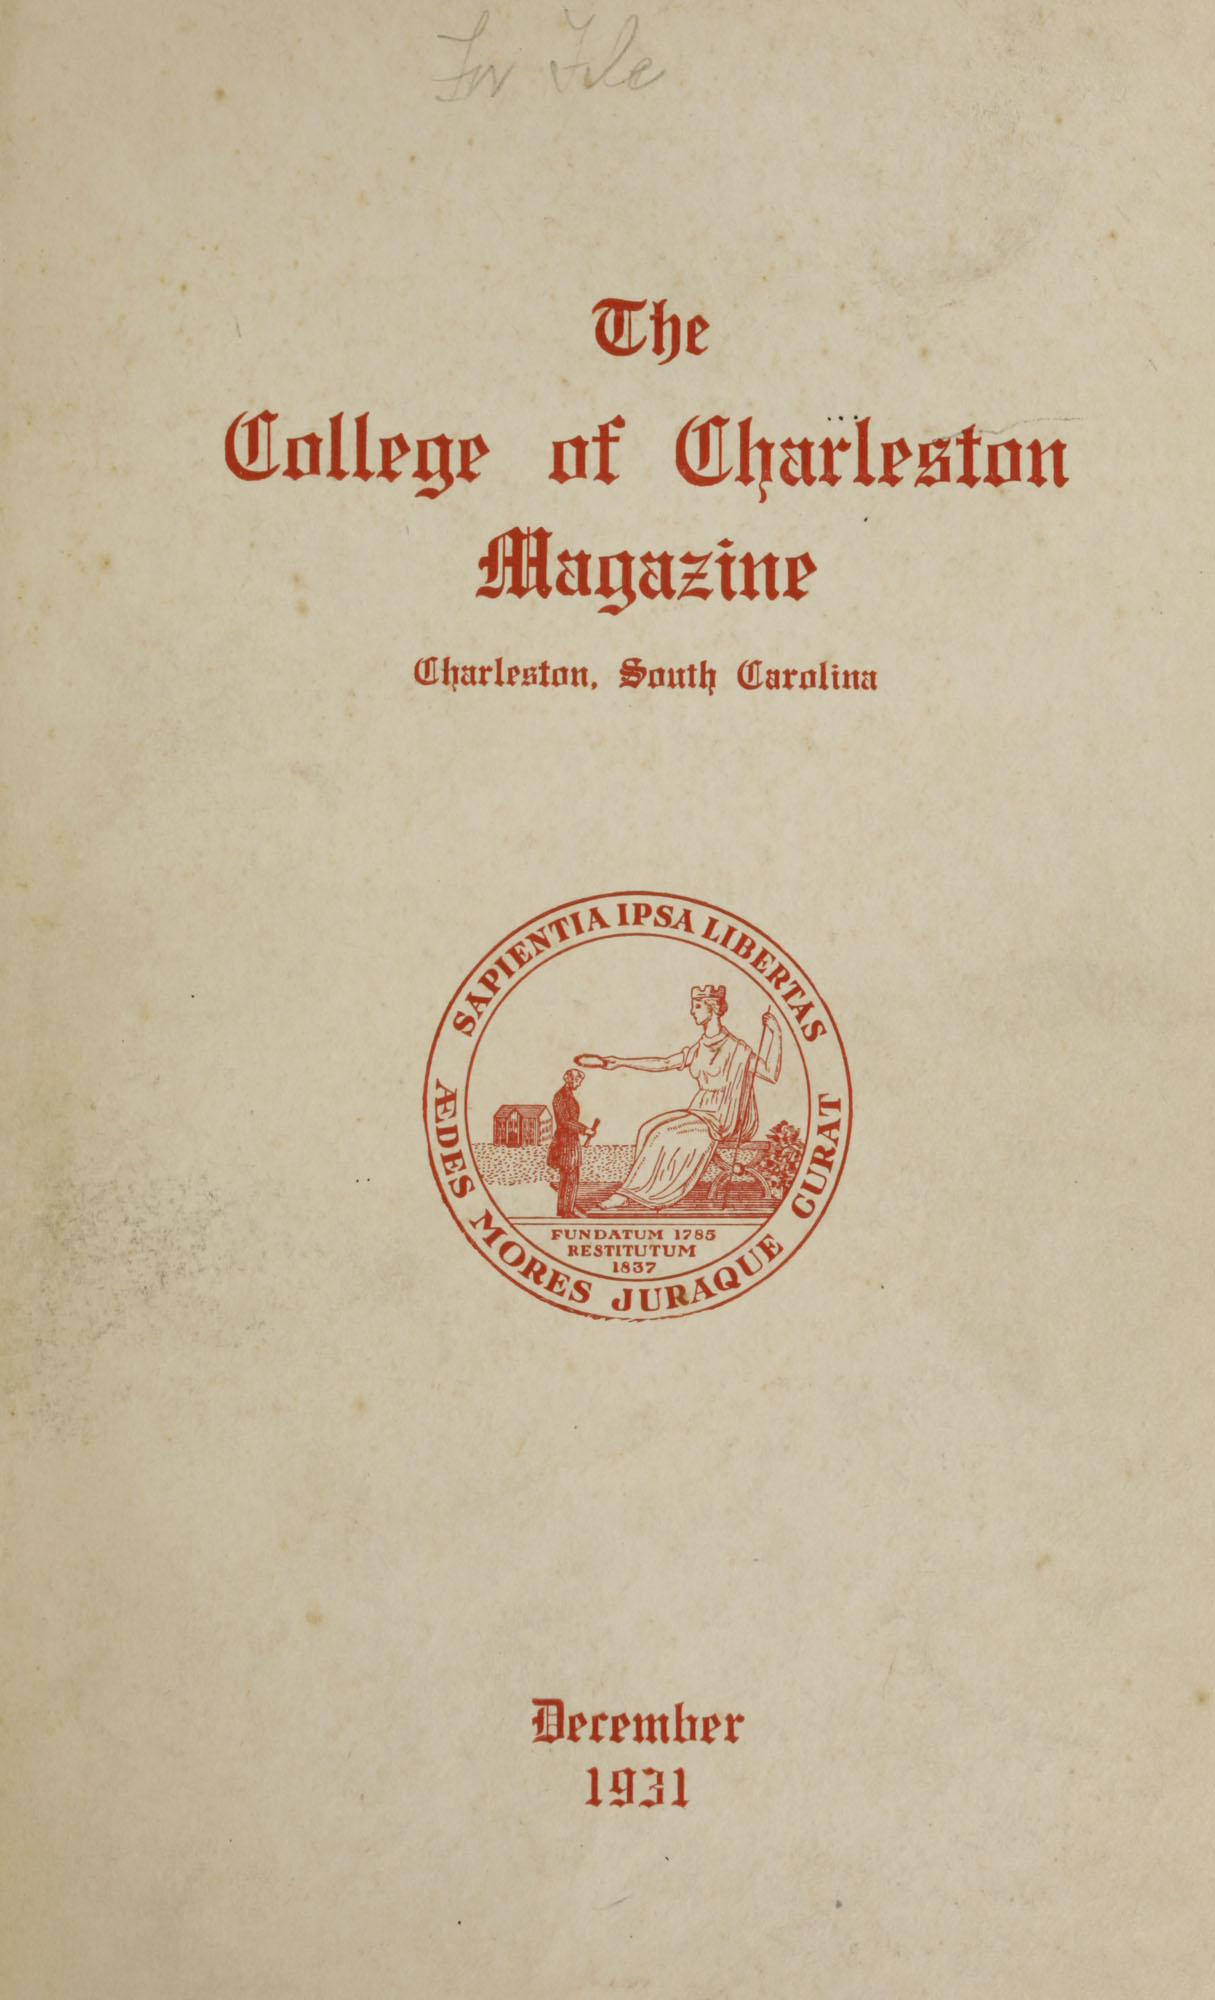 College of Charleston Magazine, 1931-1932